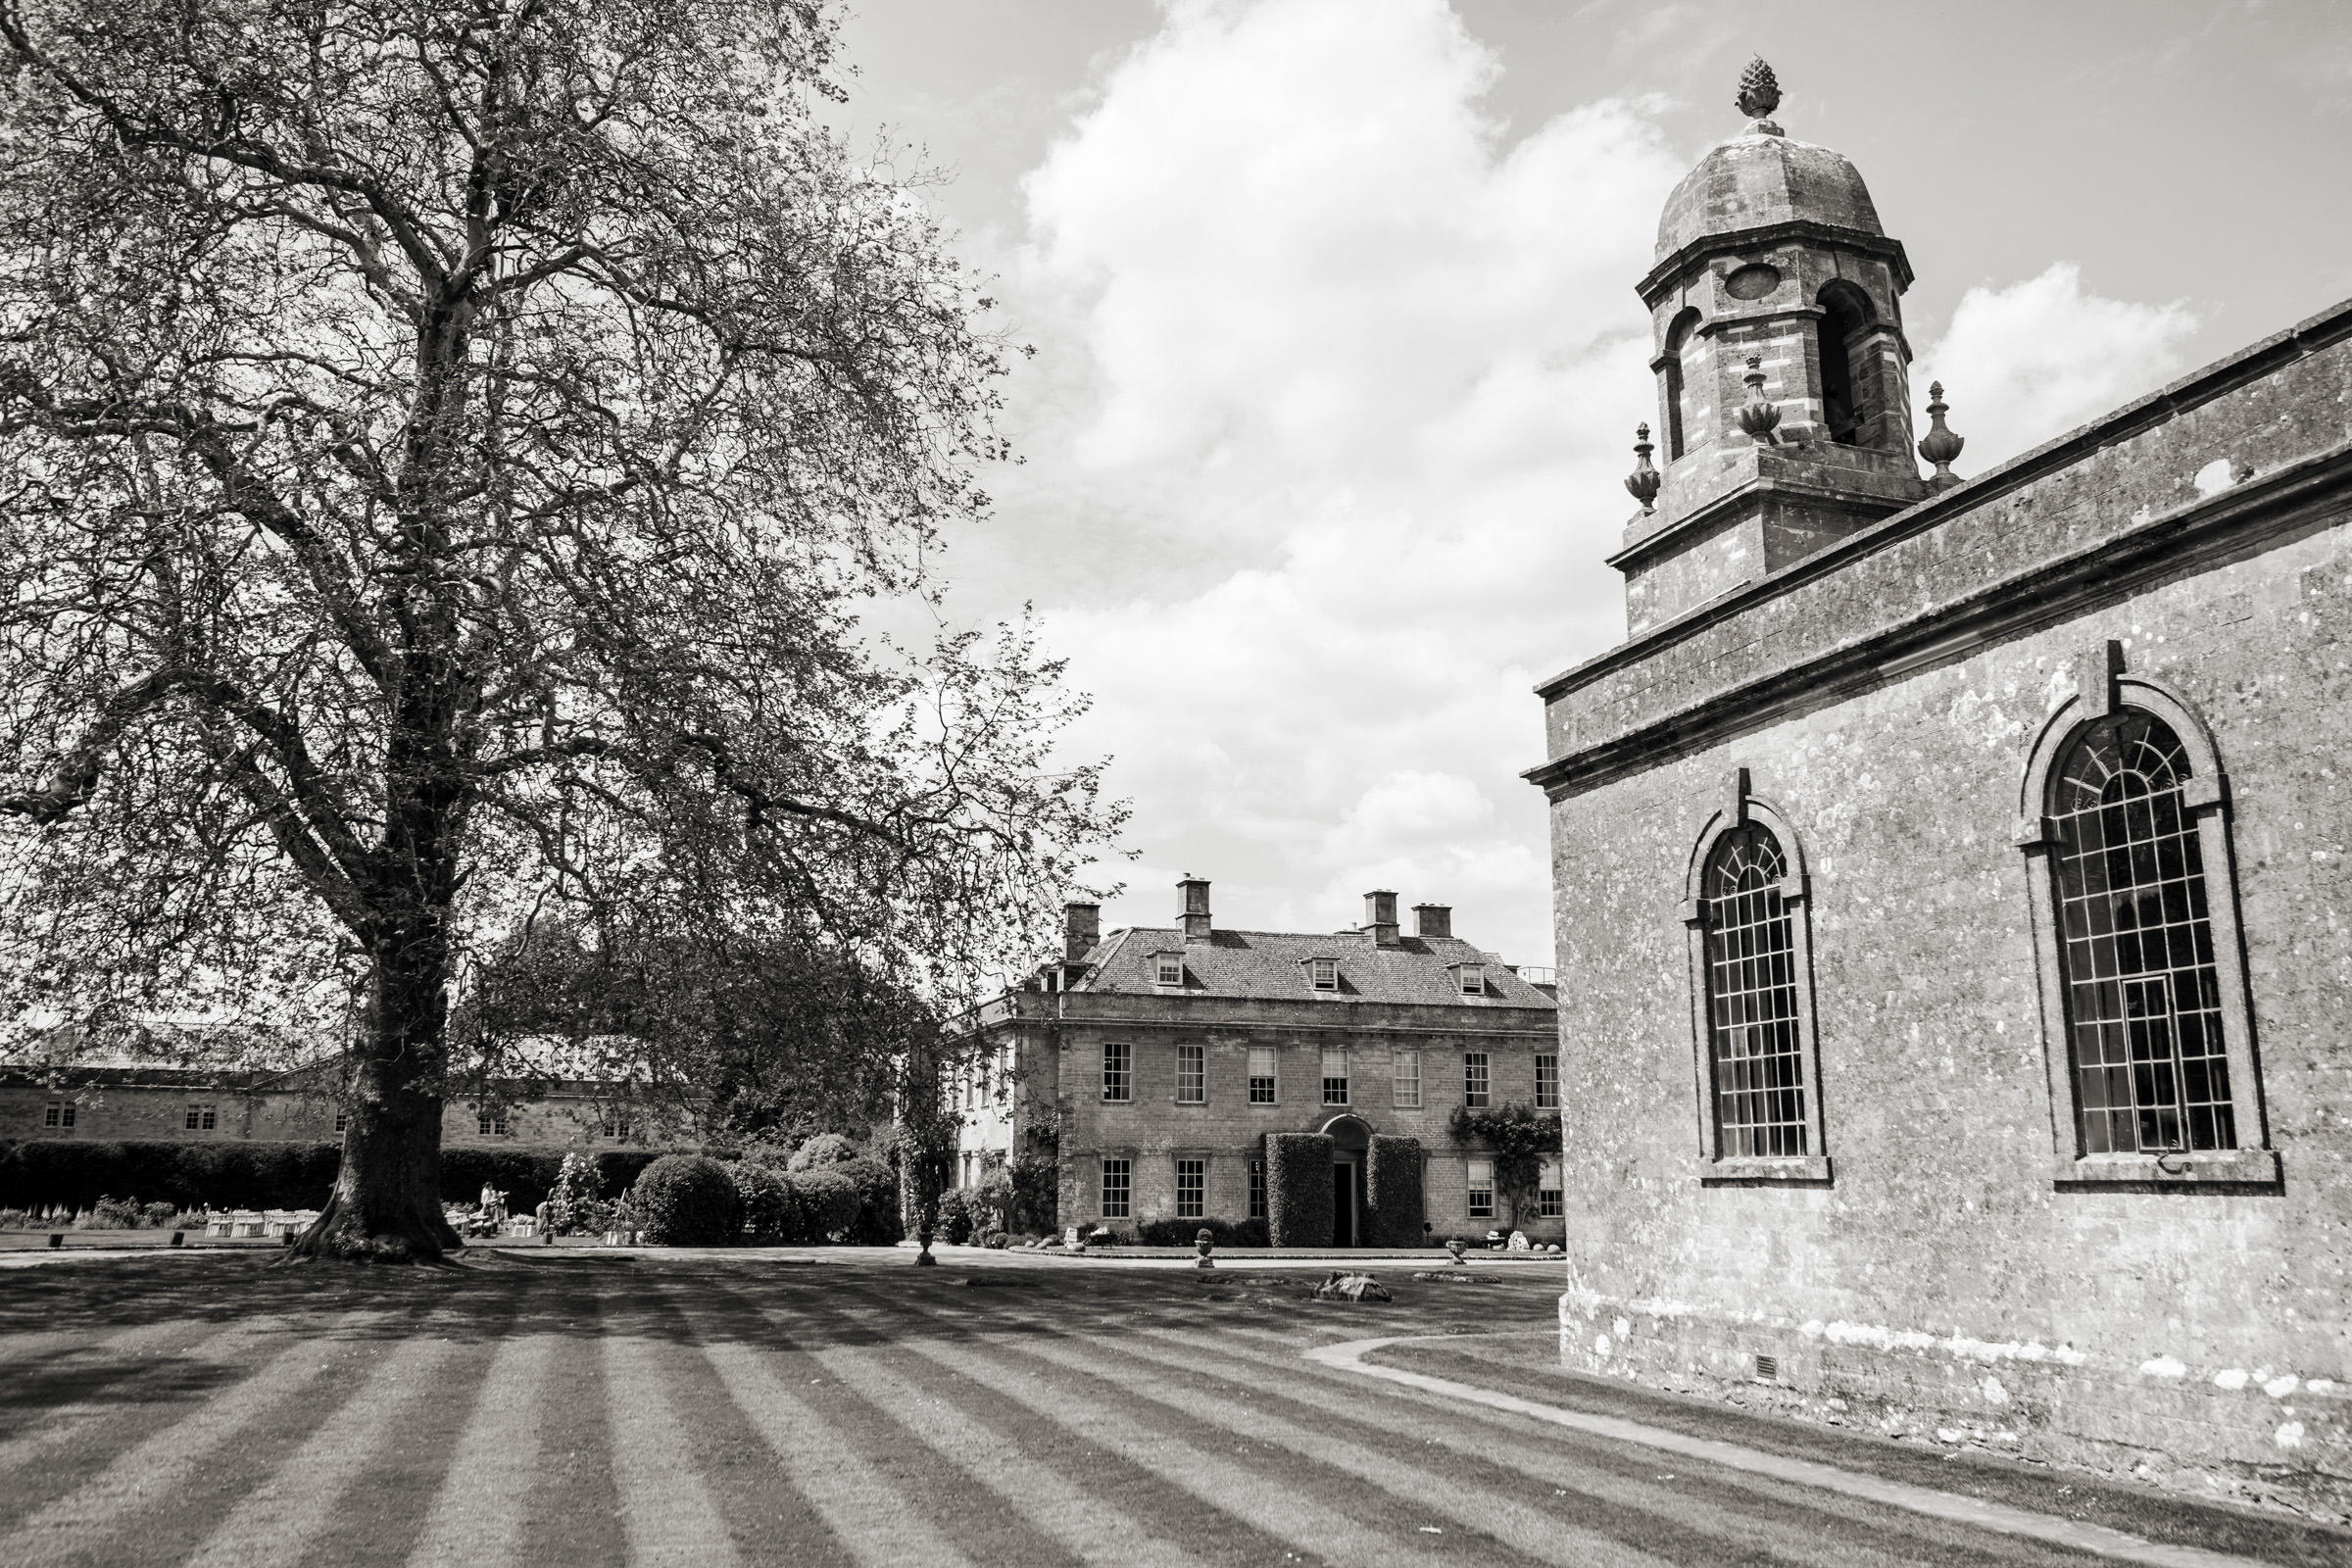 Babington House Outdoor Civil Ceremony and Wedding Day 001.jpg